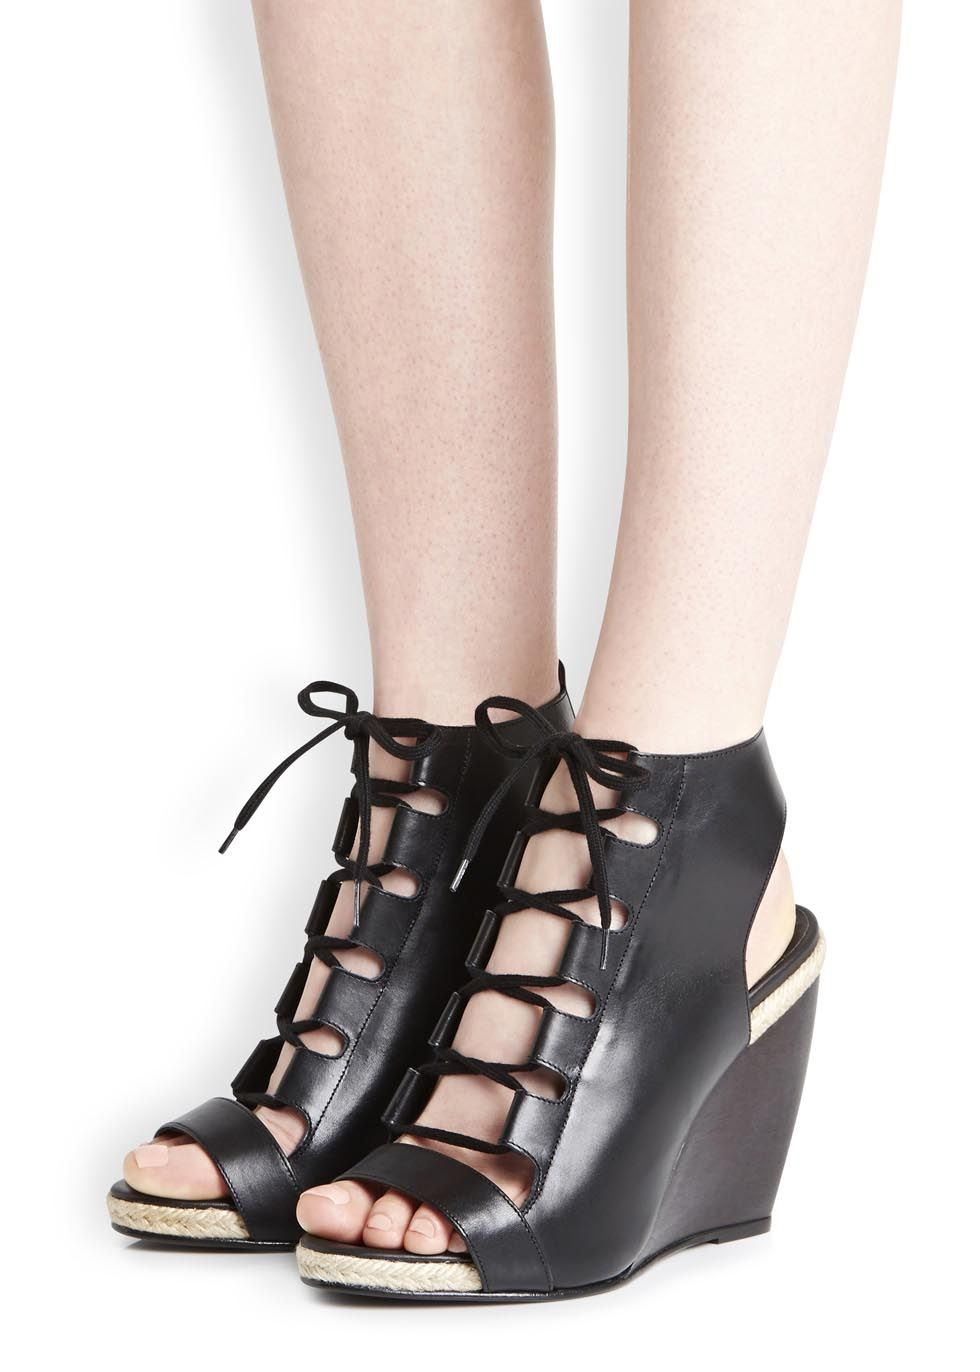 Pierre Hardy Black leather wedge sandals